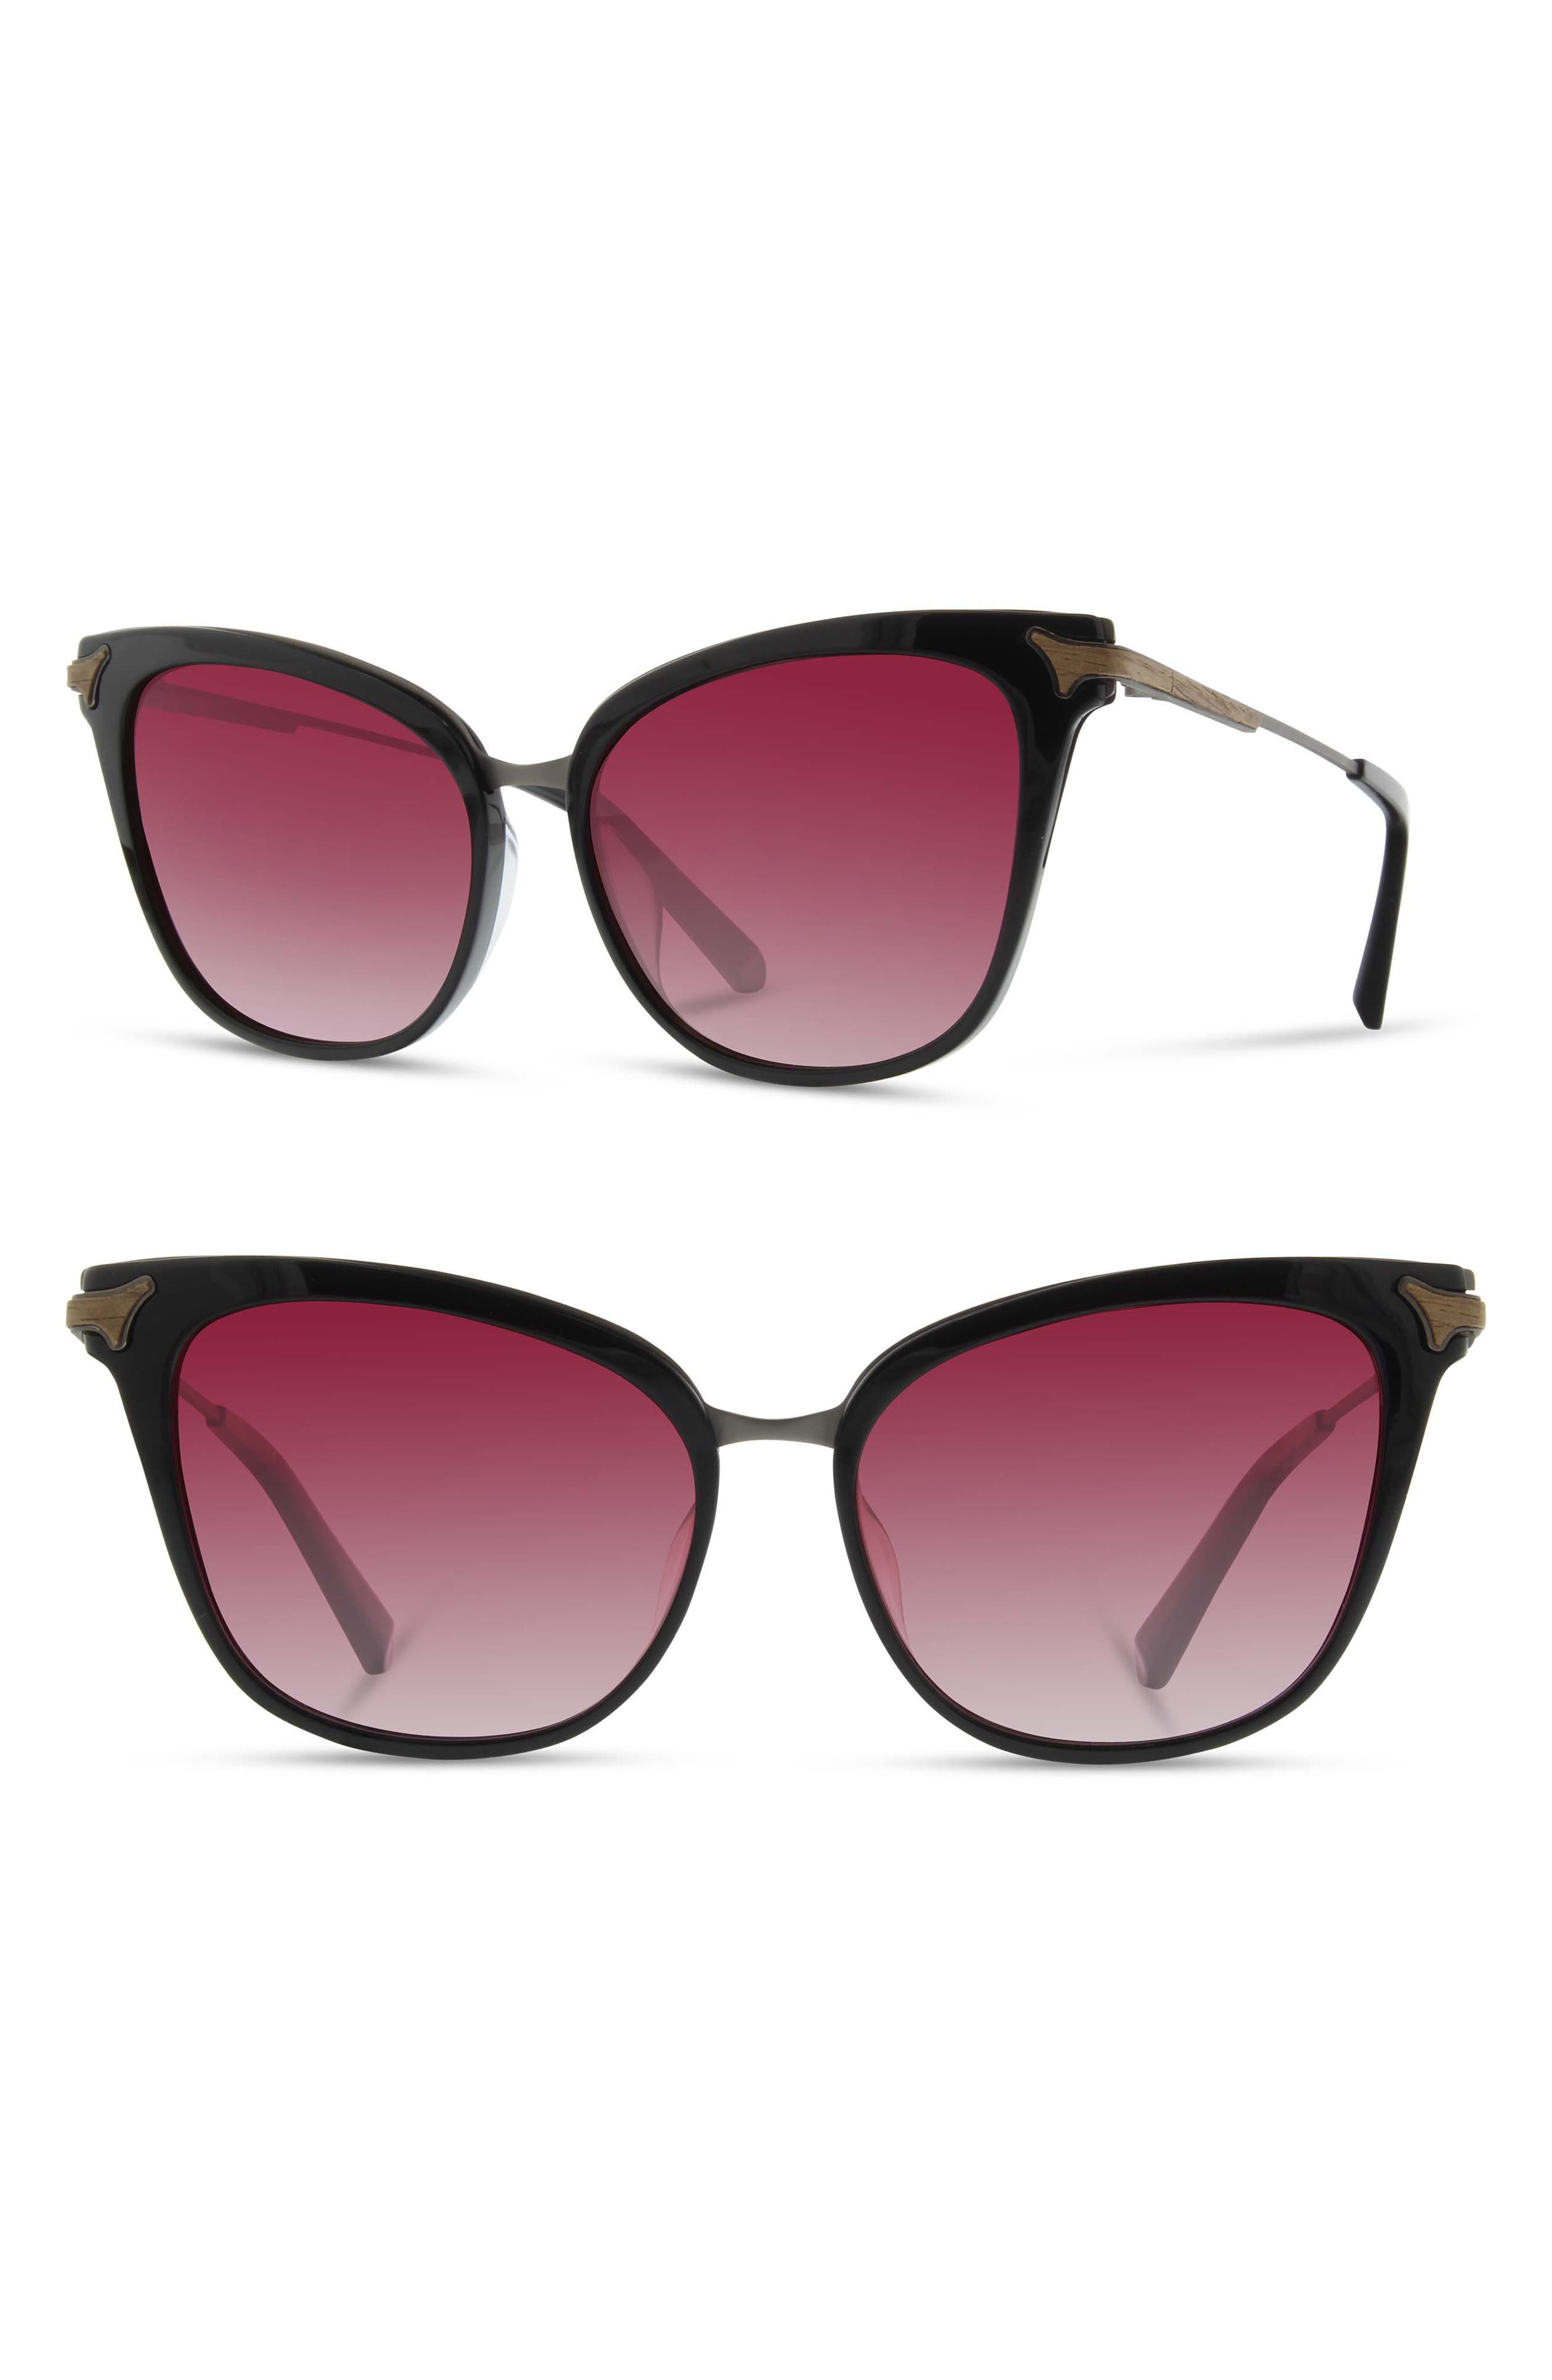 Shwood Arlene 5m Polarized Cat Eye Sunglasses - Black/ Gunmetal/ Rose Fade